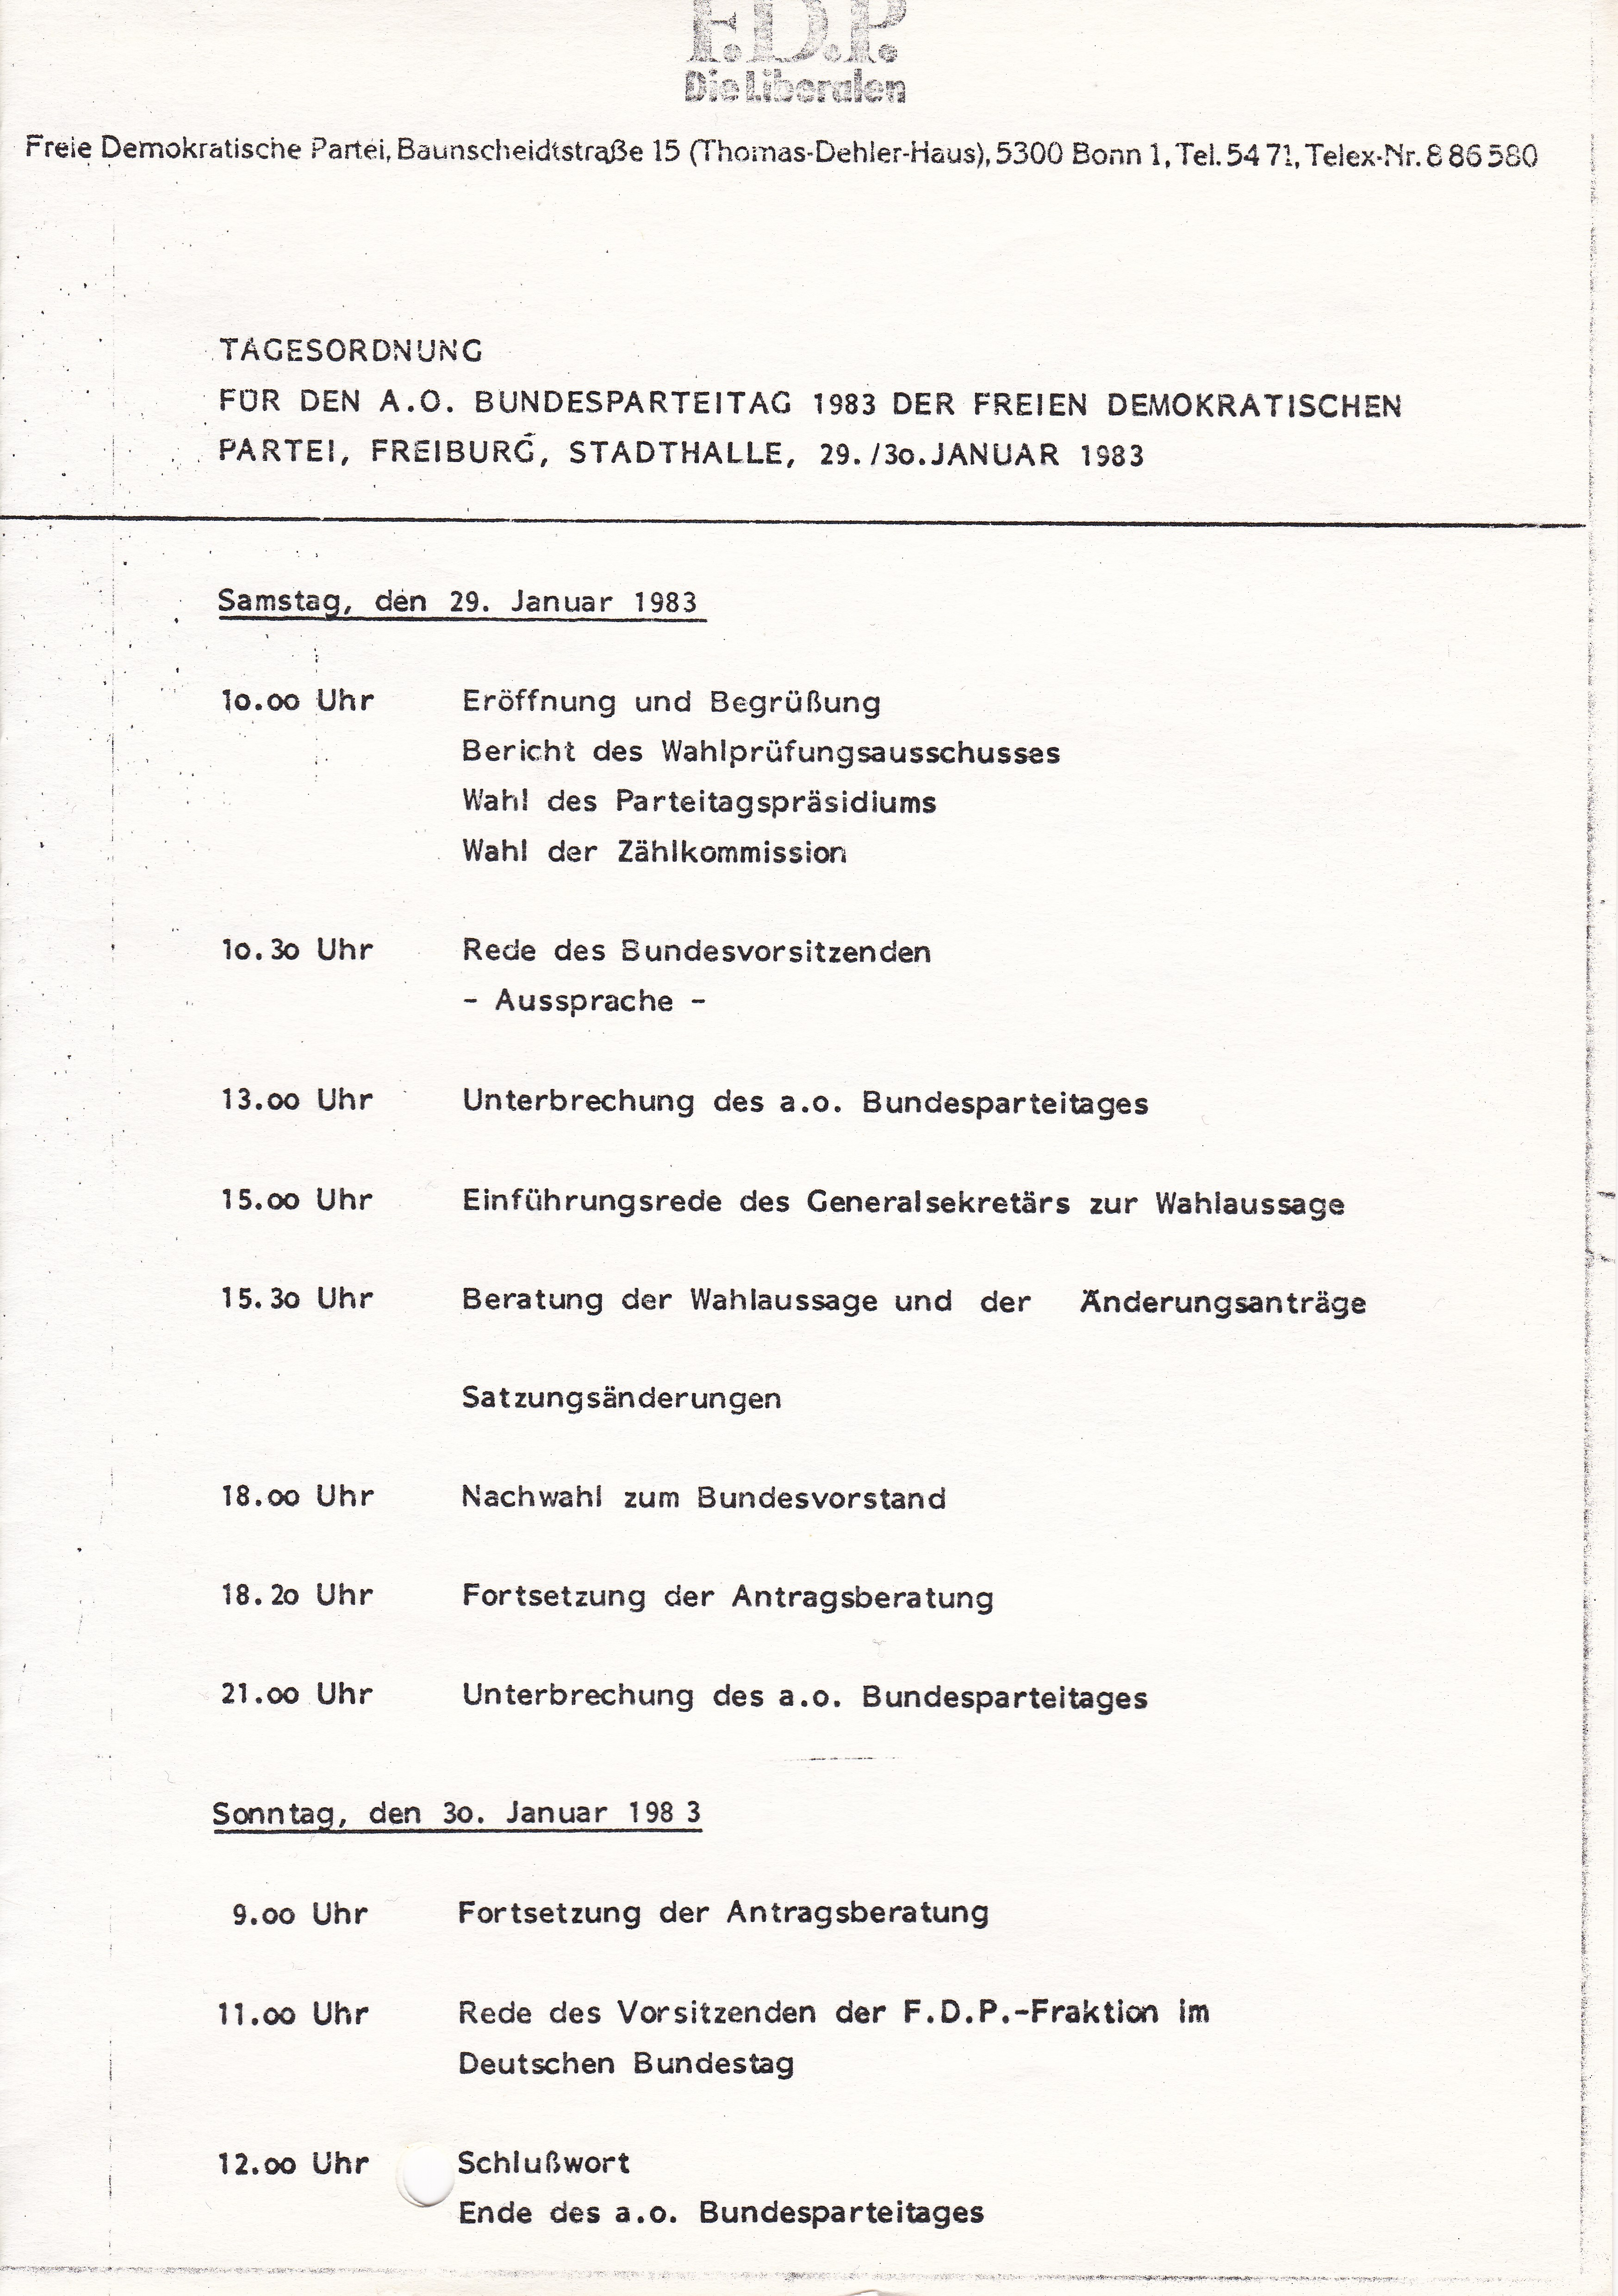 Datei:AO Bundesparteitag 1983 Tagesordnung.jpg – Wikipedia